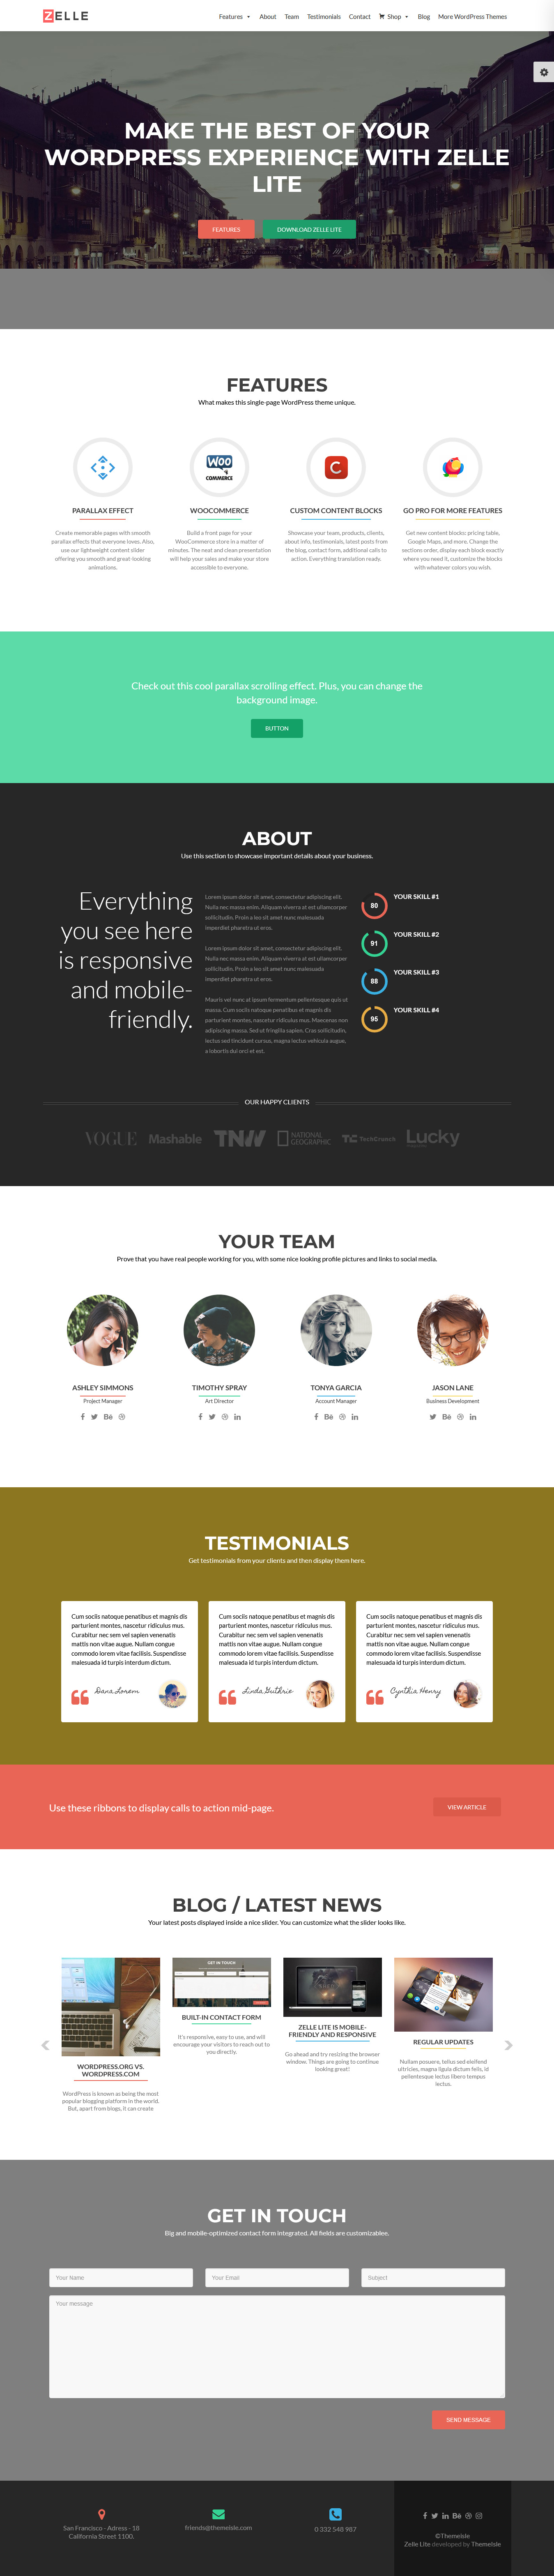 zerif lite best free buddypress wordpress theme - 10+ Best Free BuddyPress WordPress Themes